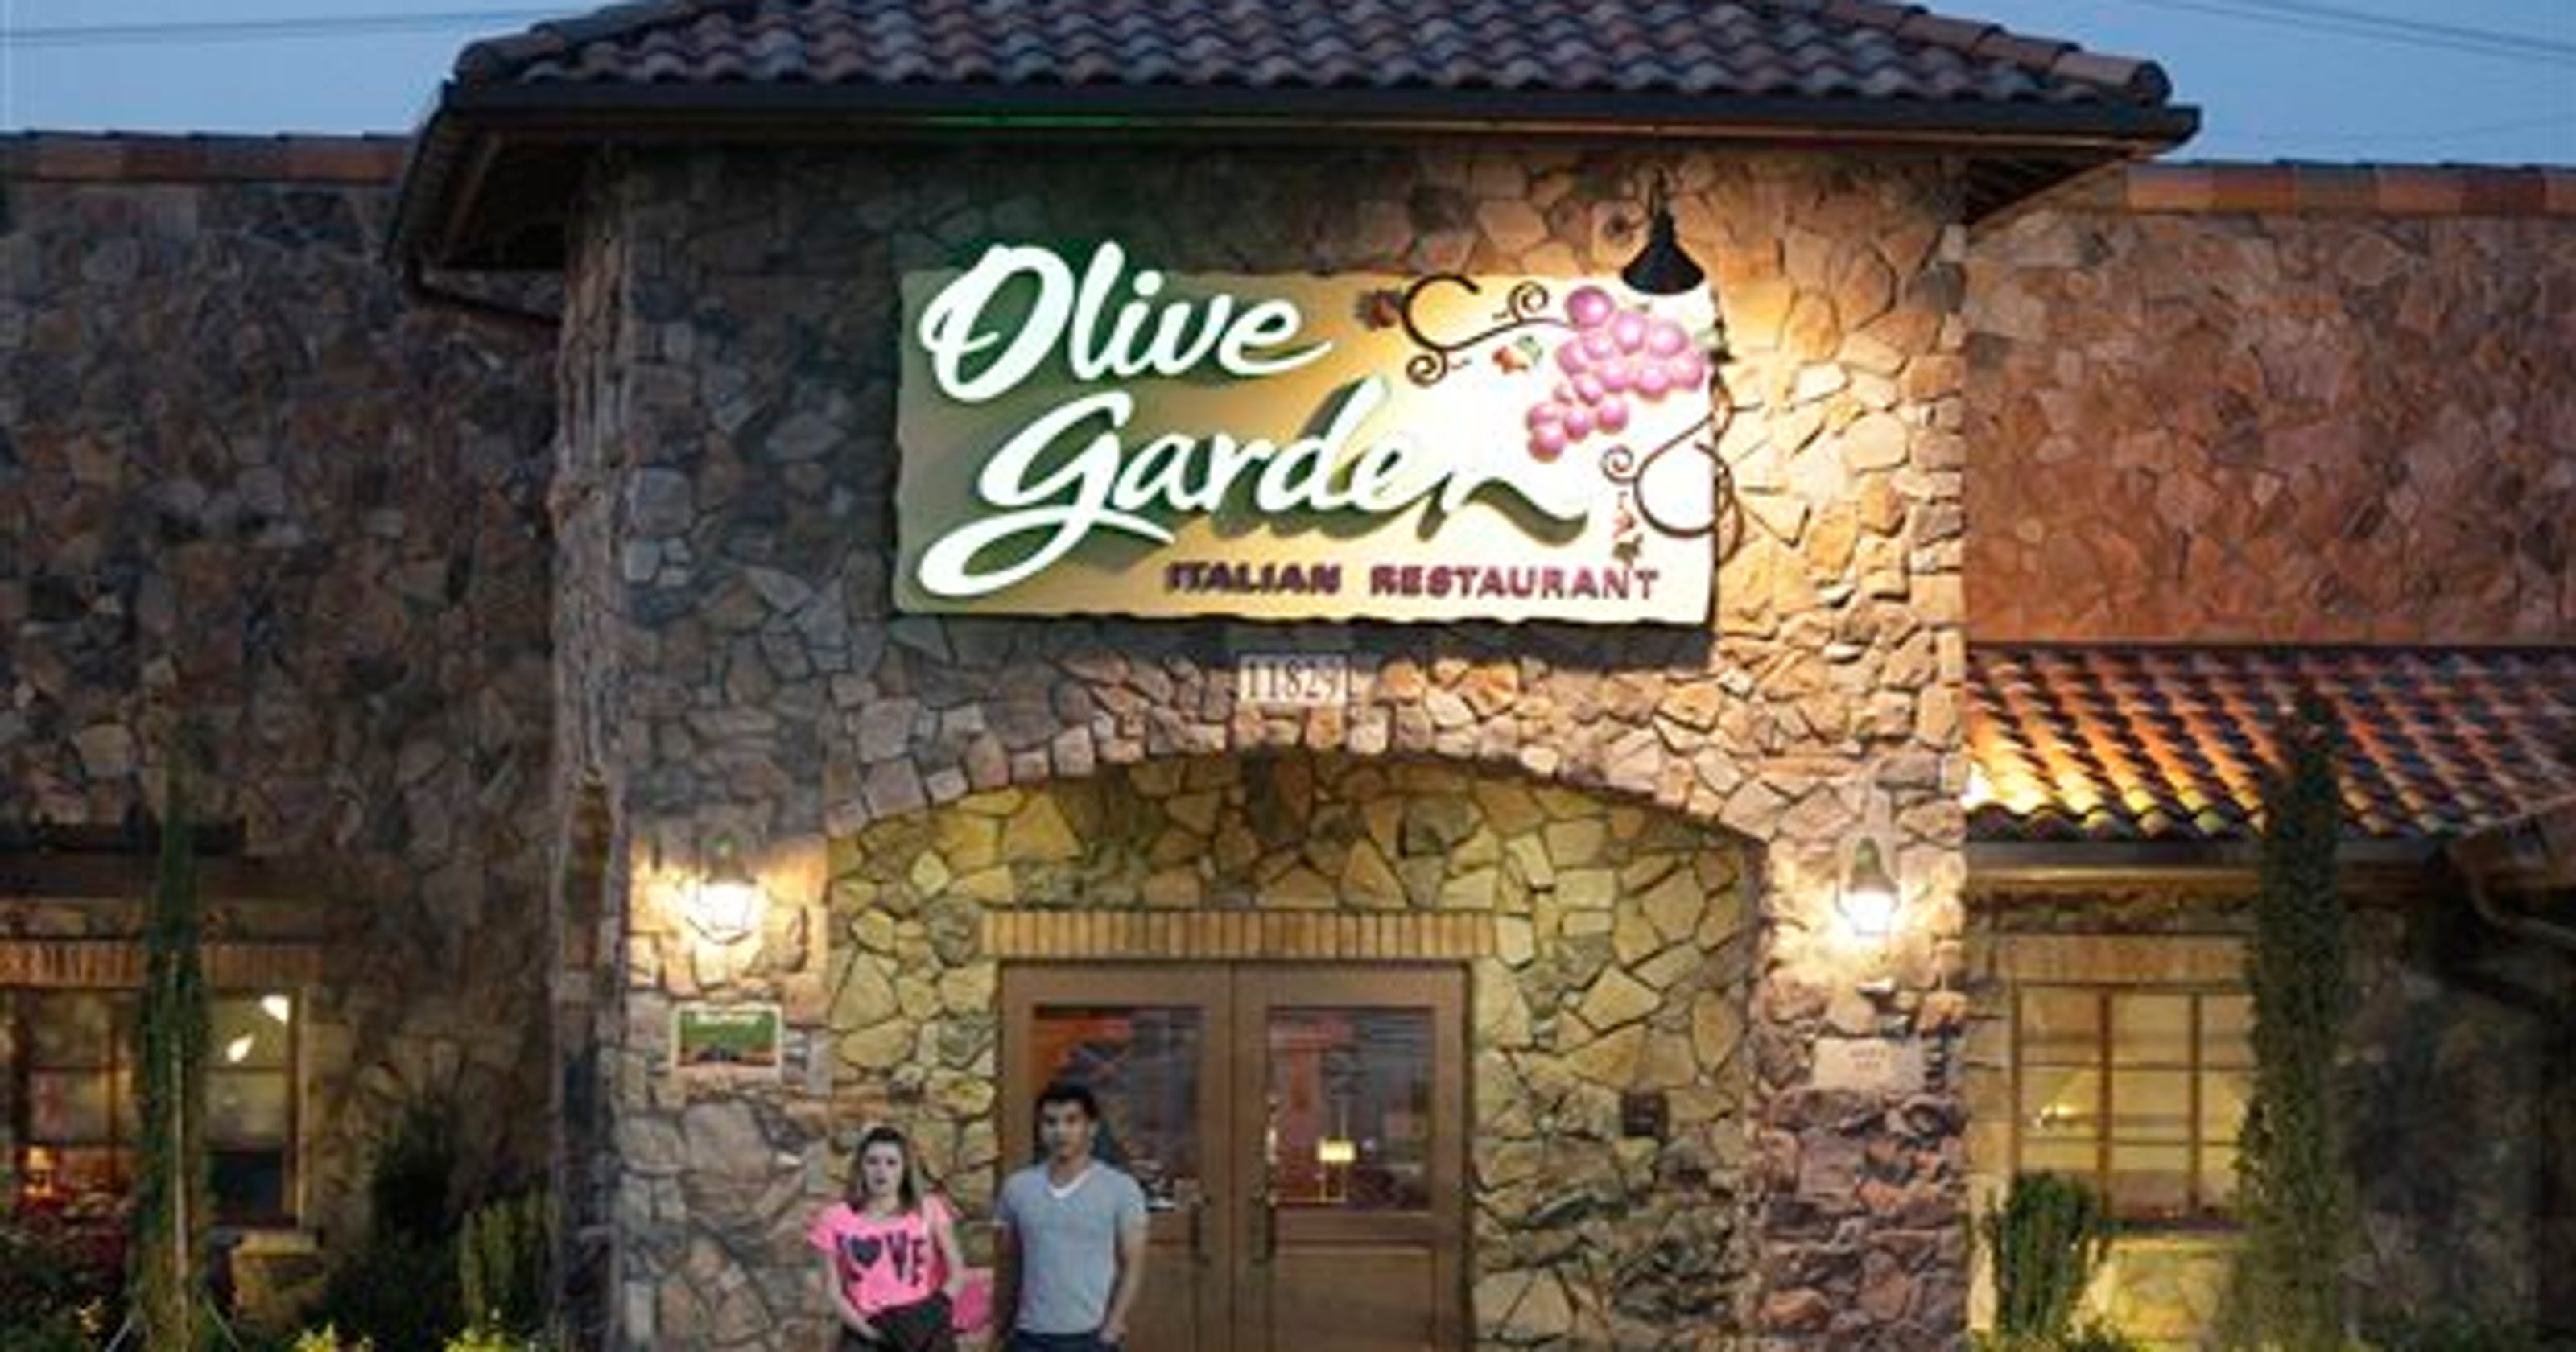 Olive Garden sees gains as diners splurge on extras